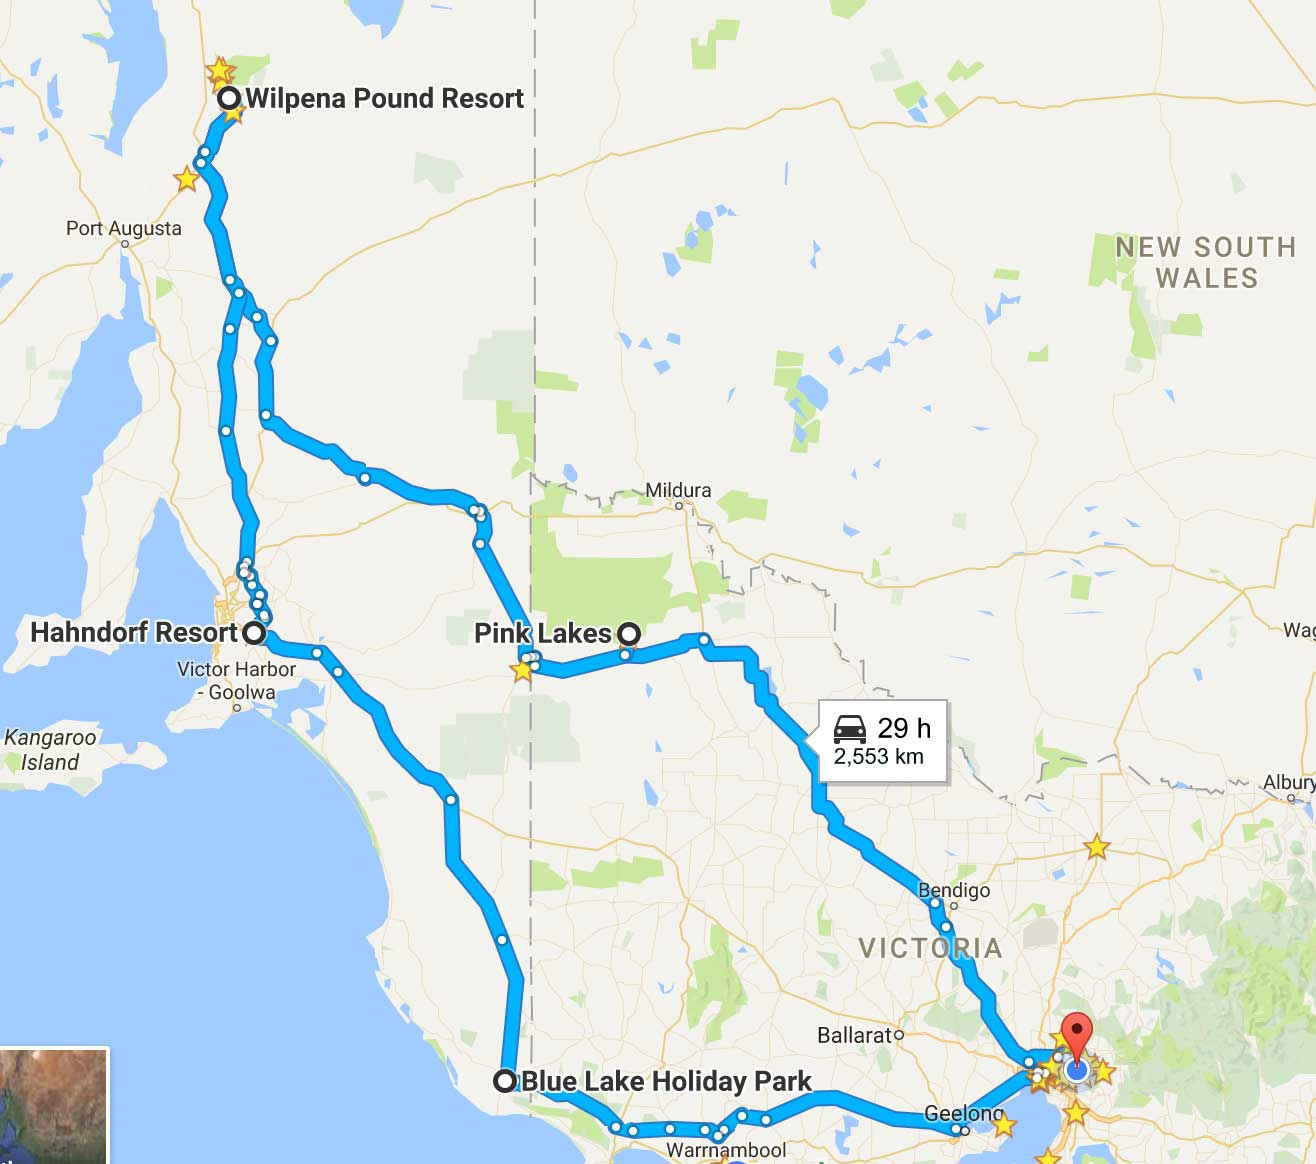 Melbourne to Wilpena Pound camping trip